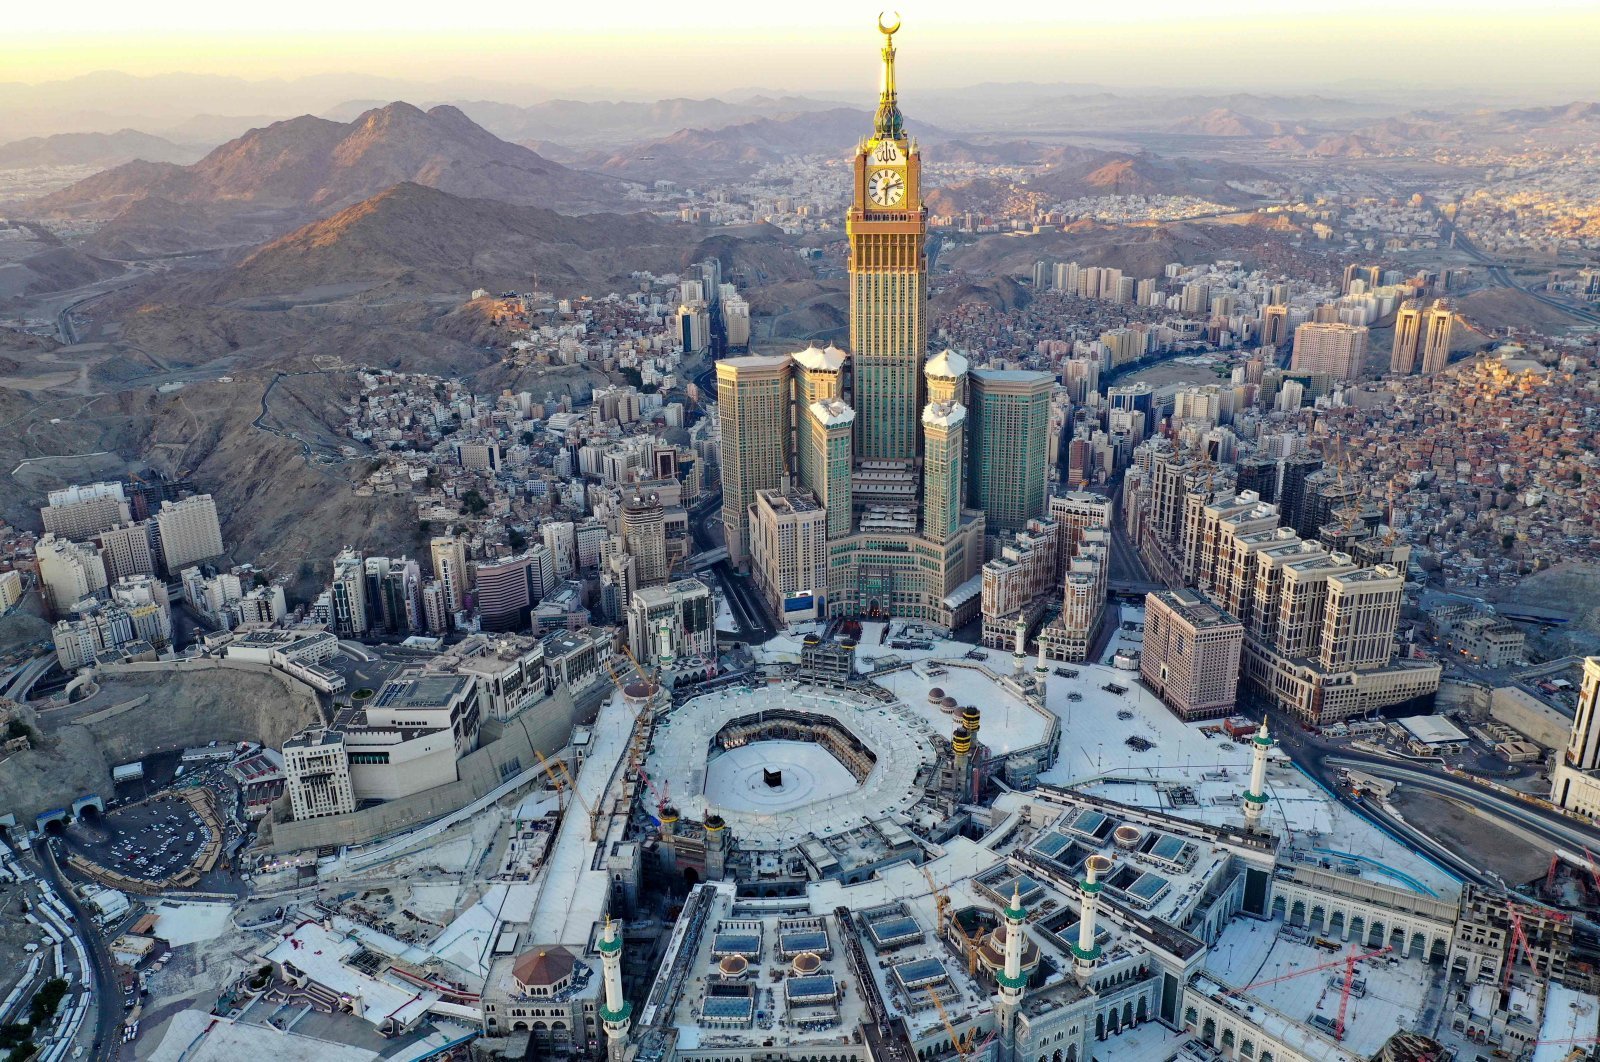 An aerial view shows the Great Mosque and the Mecca Tower, deserted on the first day of the Muslim fasting month of Ramadan, in the Saudi holy city of Mecca, April 24, 2020. (AFP Photo)